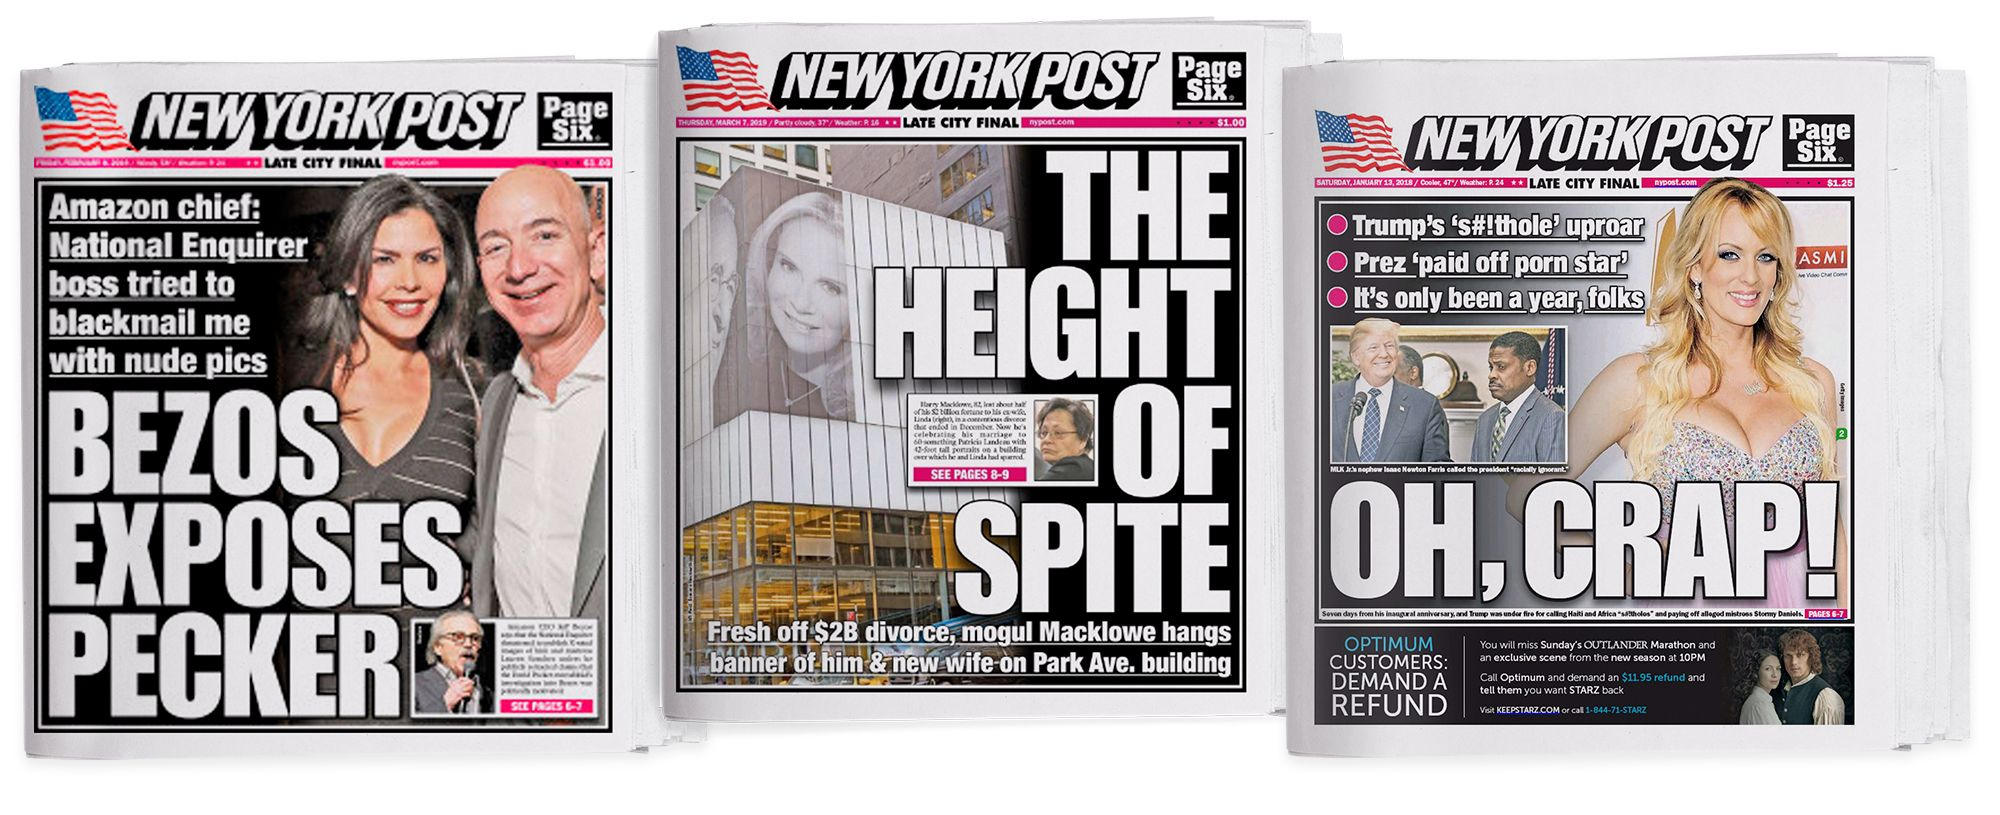 Only in New York, Kids ... The road to ruin is paved with tabloid wood, with the New York Post breathlessly covering every detail of the Bezos, Macklowe, and Trump indiscretions.